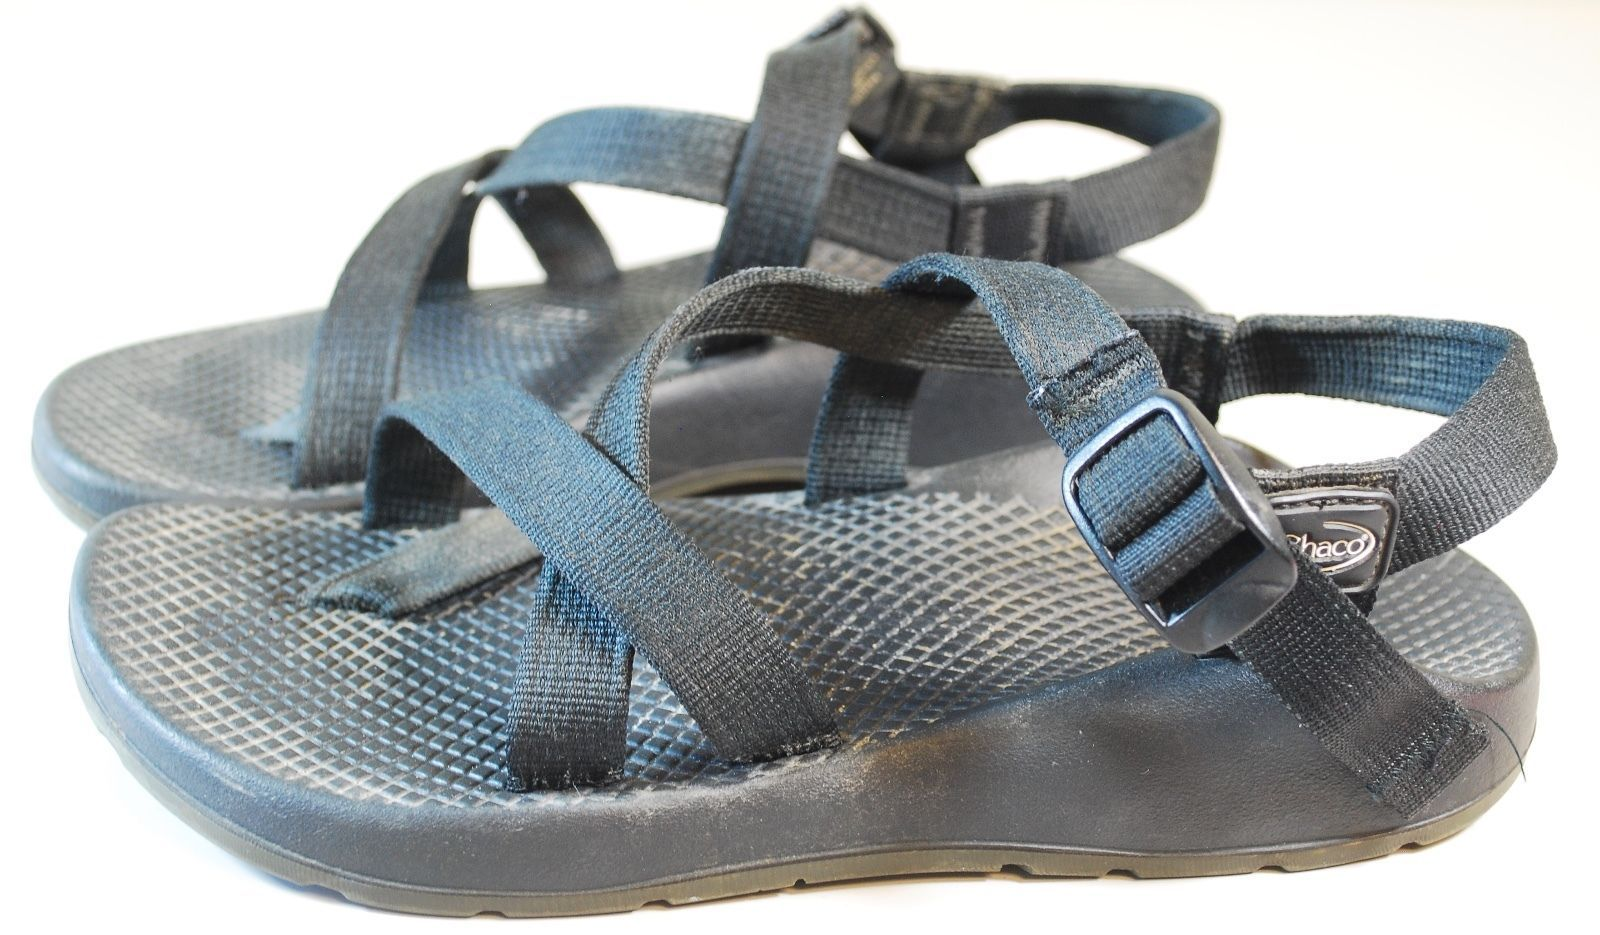 fdb31babf Chaco Women s Sport Sandals Size Us 8 Solid and 50 similar items. 57